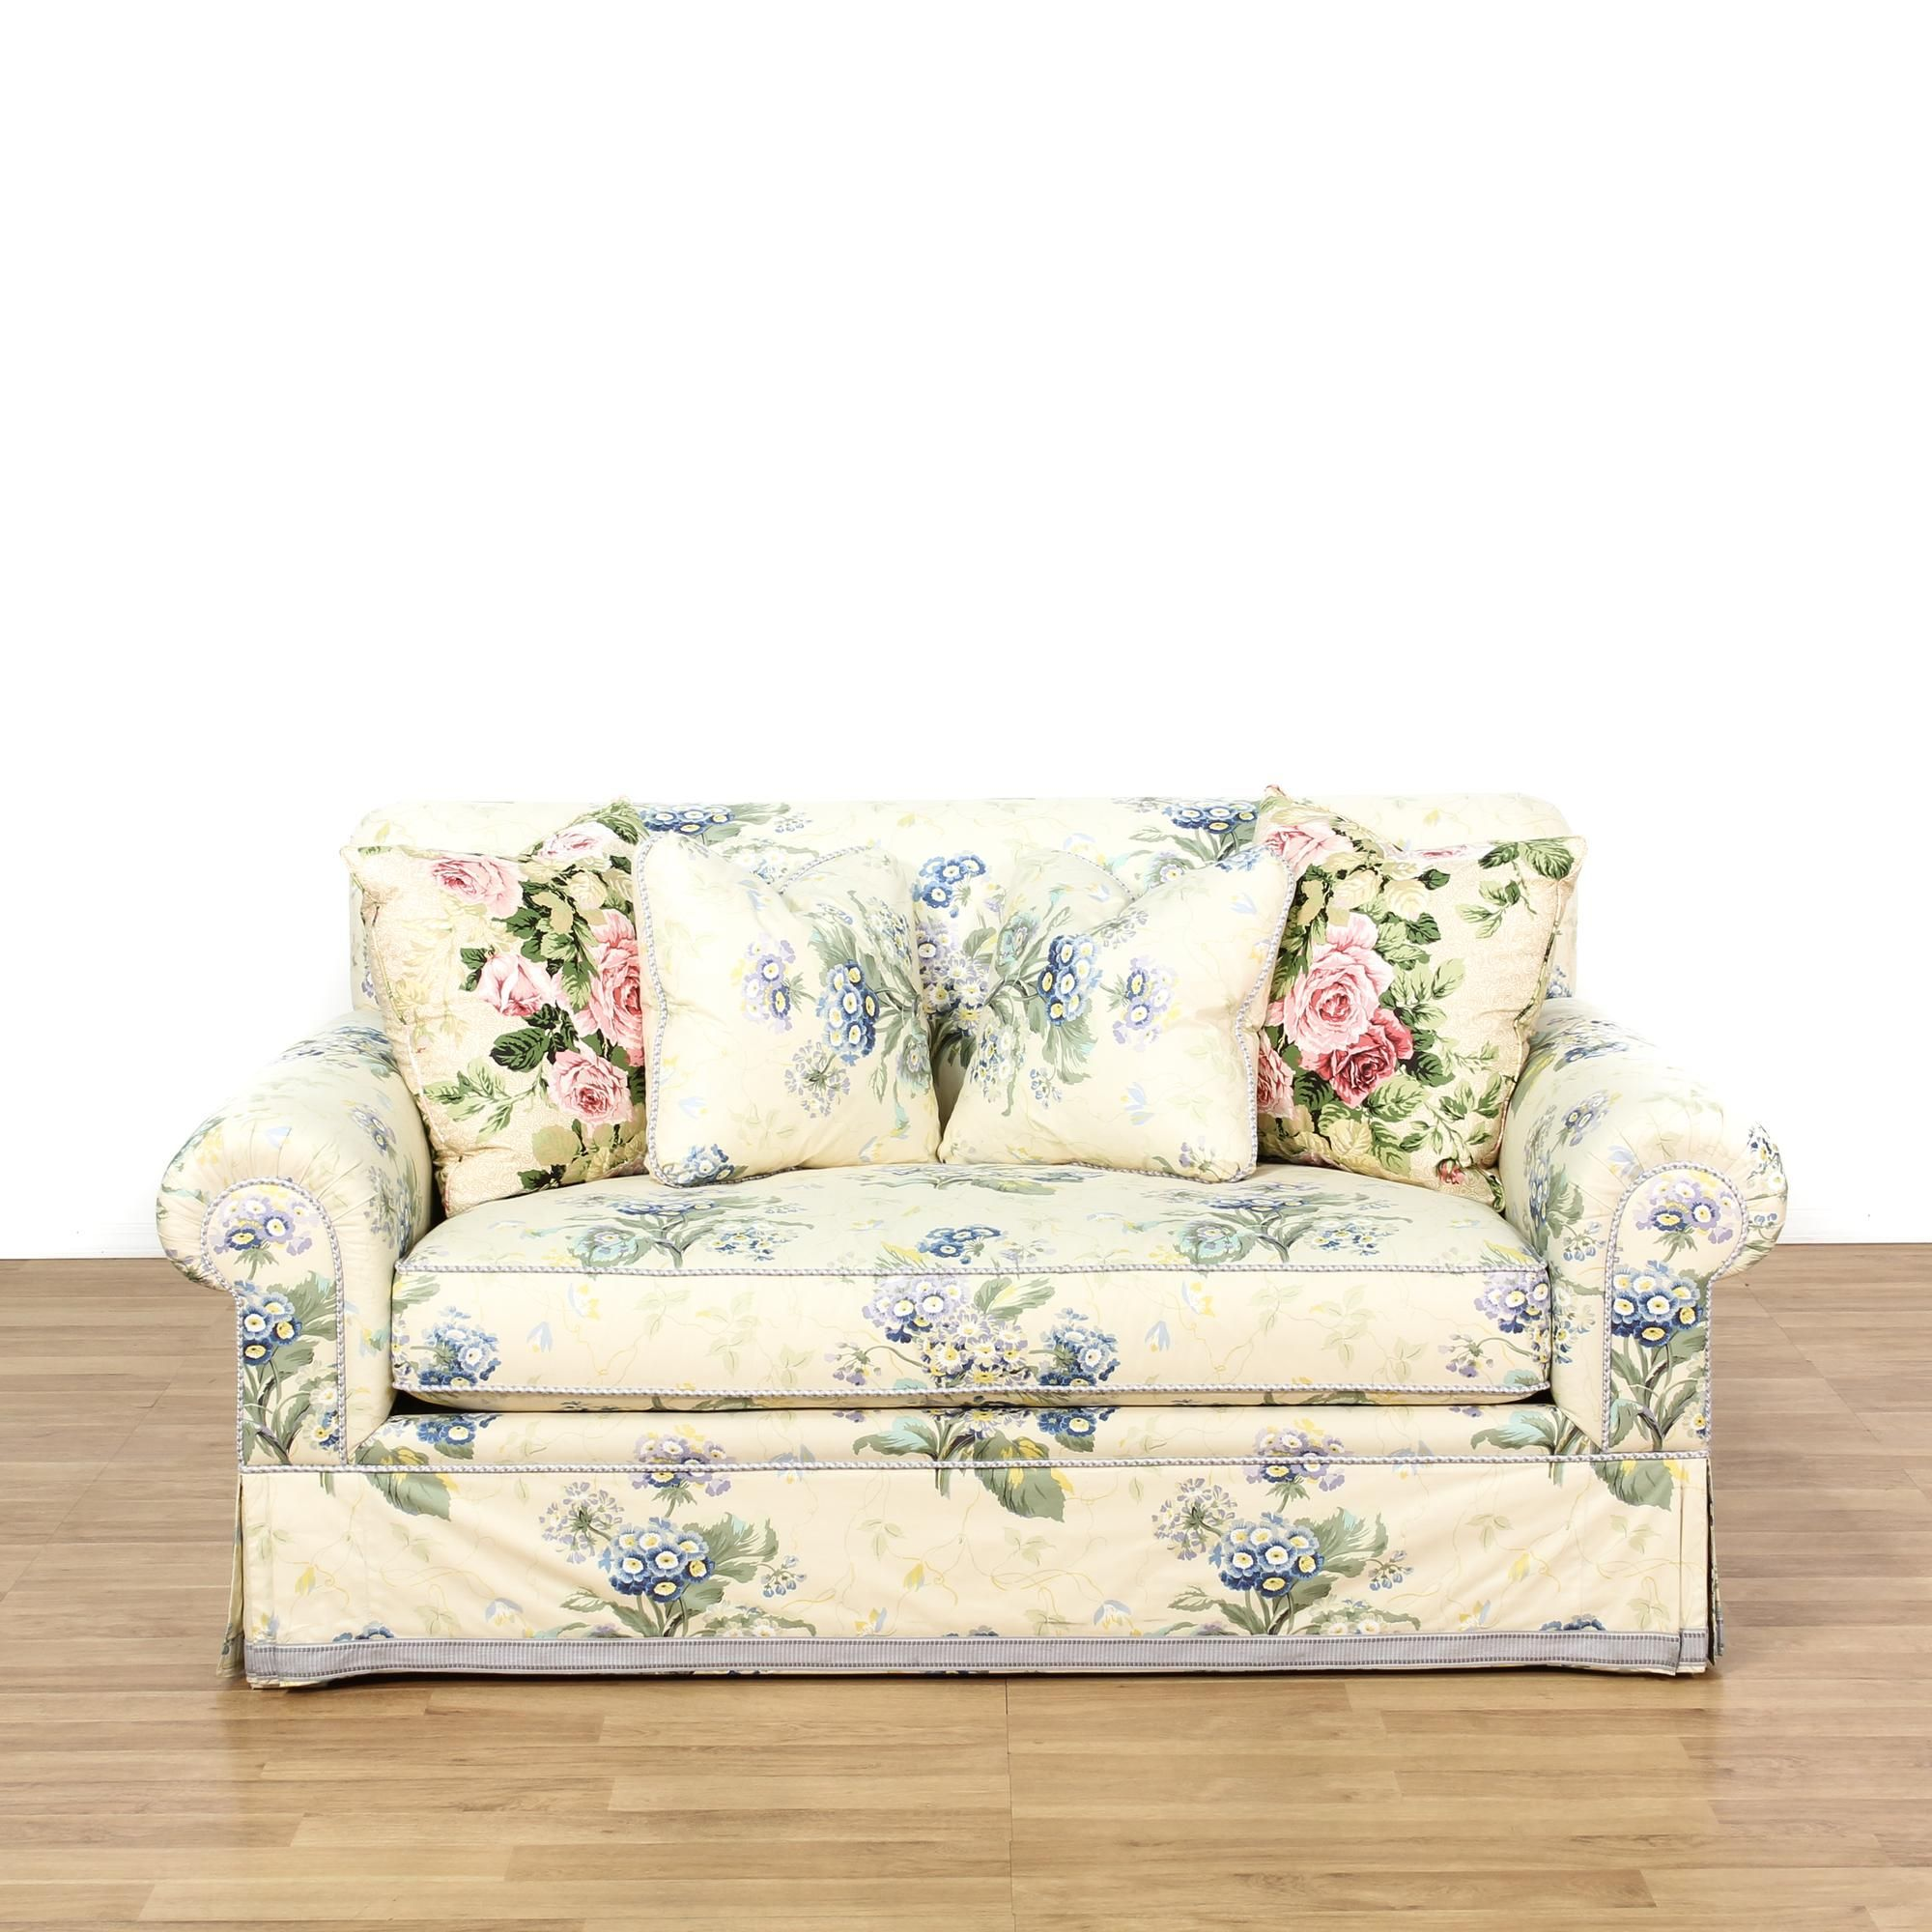 this loveseat is upholstered in a blue floral pattern this cottage chic style sofa has rolled end arms comfortable c love seat cottage chic vintage furniture